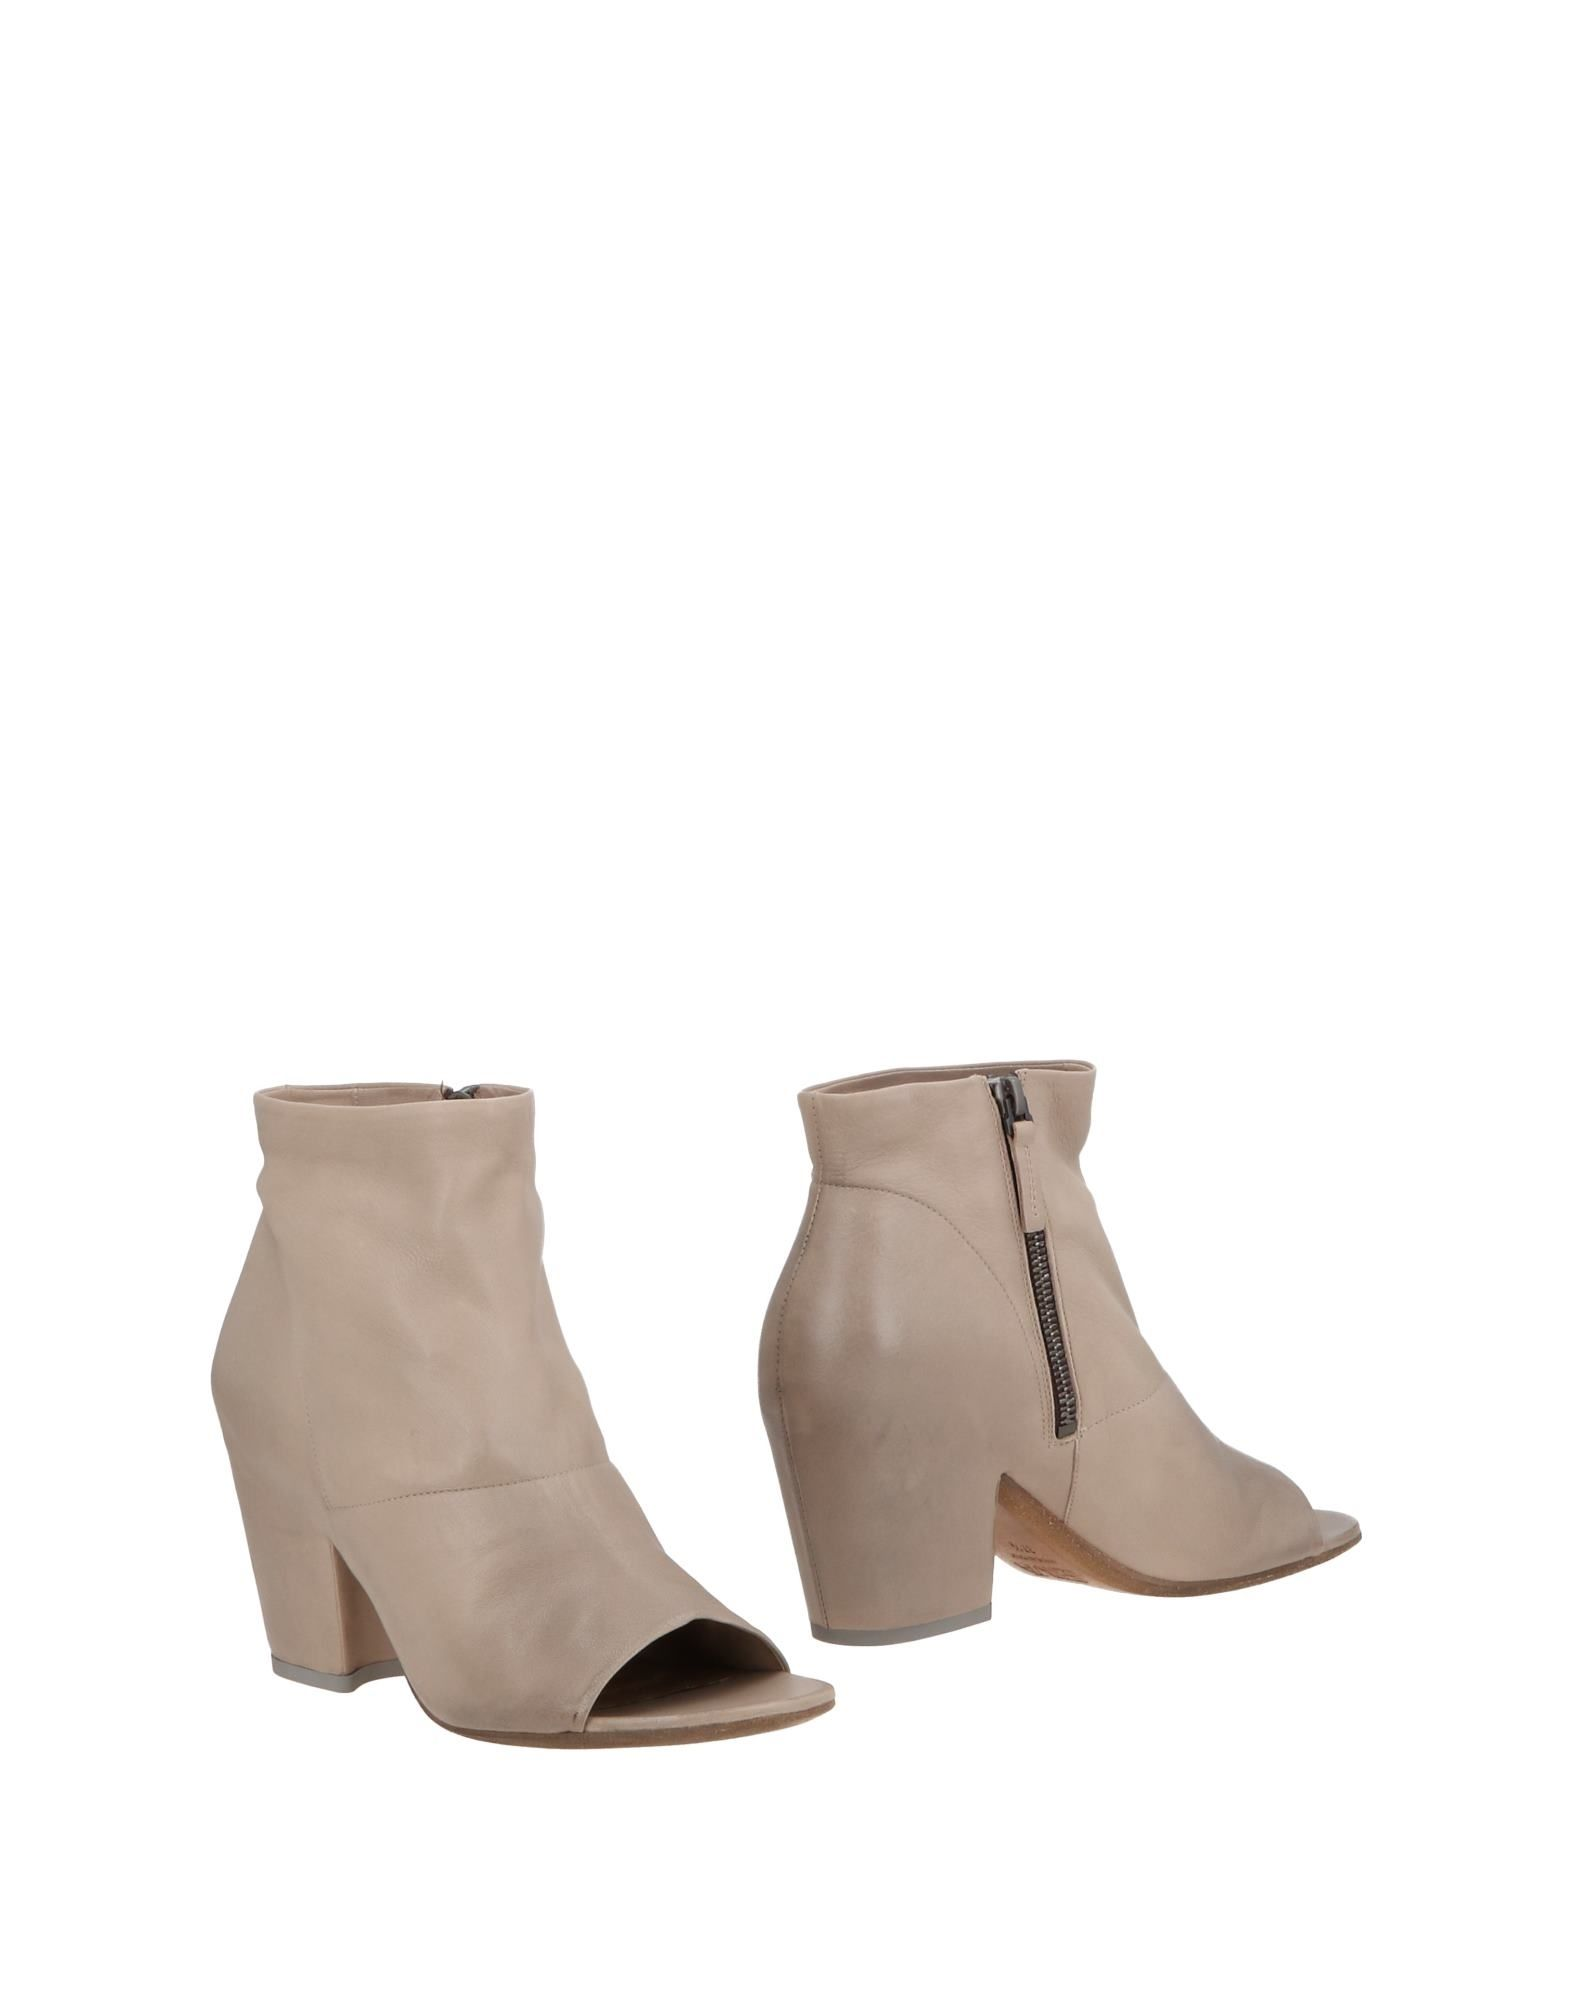 SETTIMA Ankle Boot in Beige